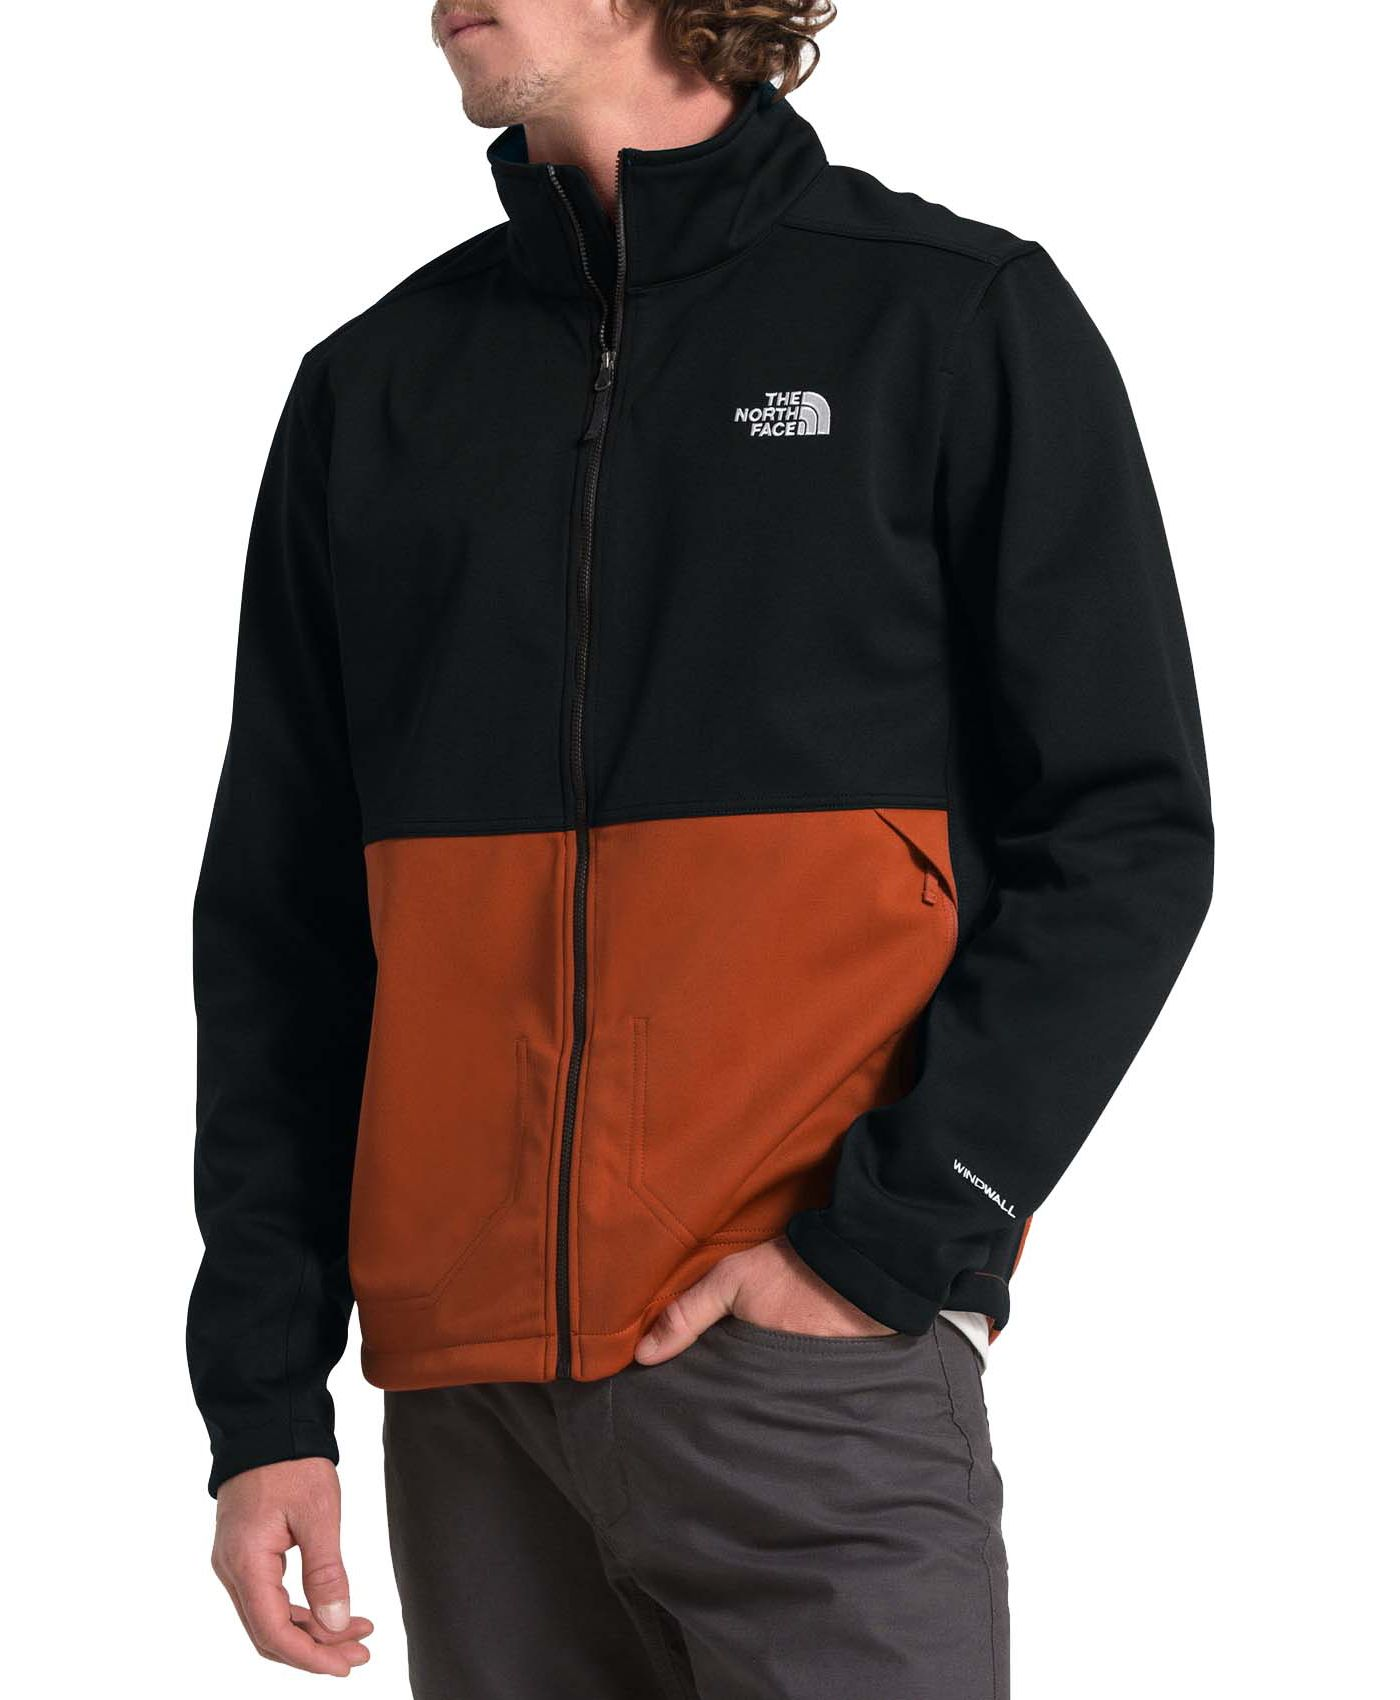 The North Face Men's Apex Canyonwall Full-Zip Jacket